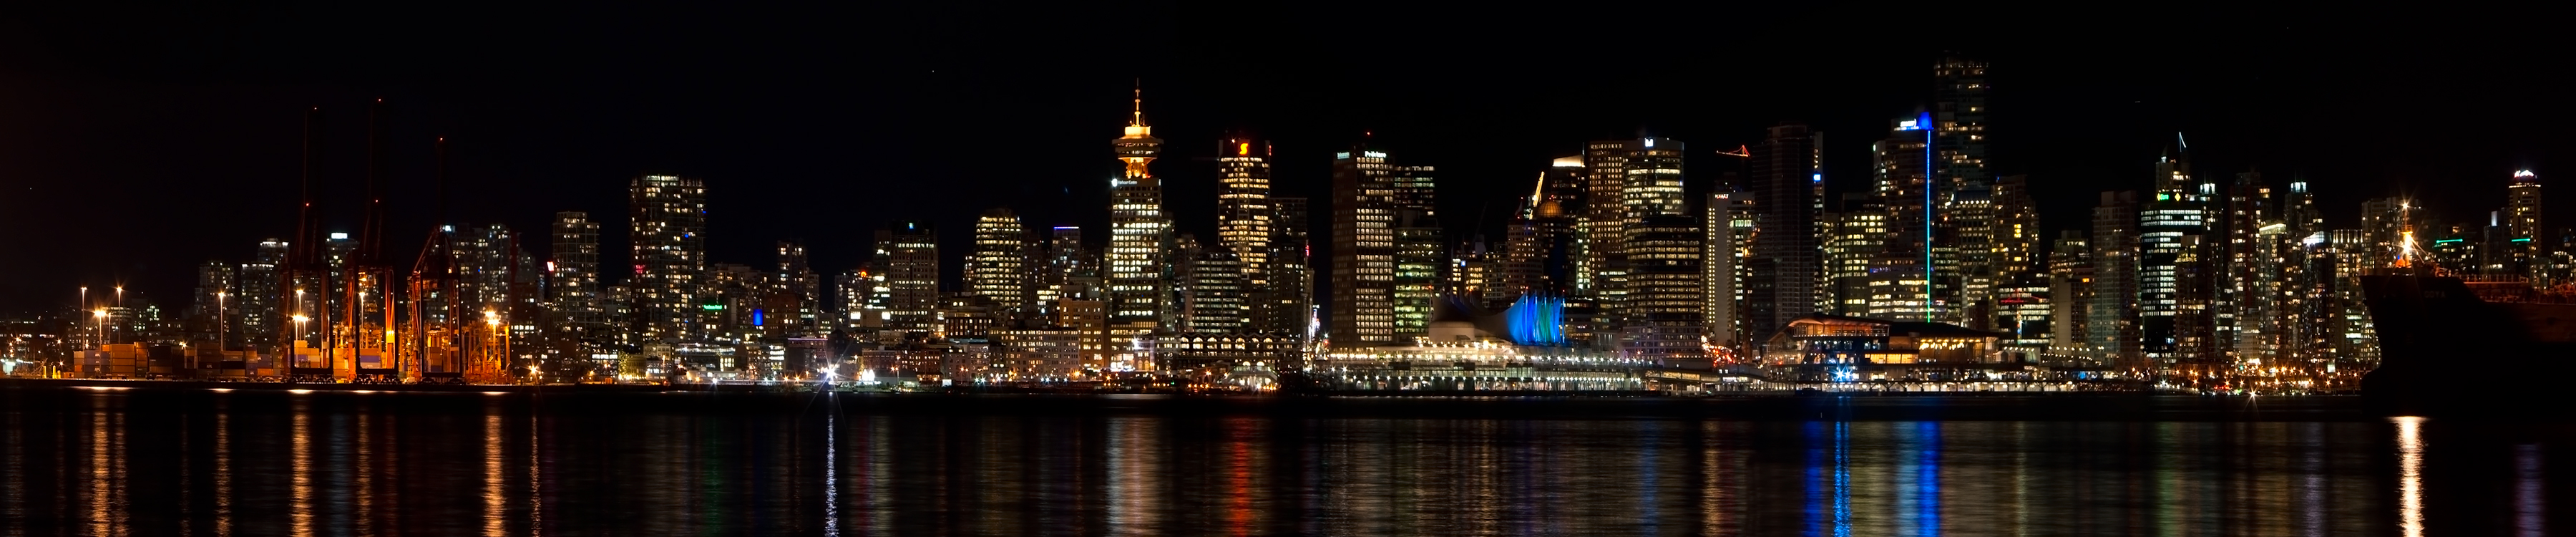 Vancouver Bc At Night 3rd Place Winner Pentax User Photo Gallery